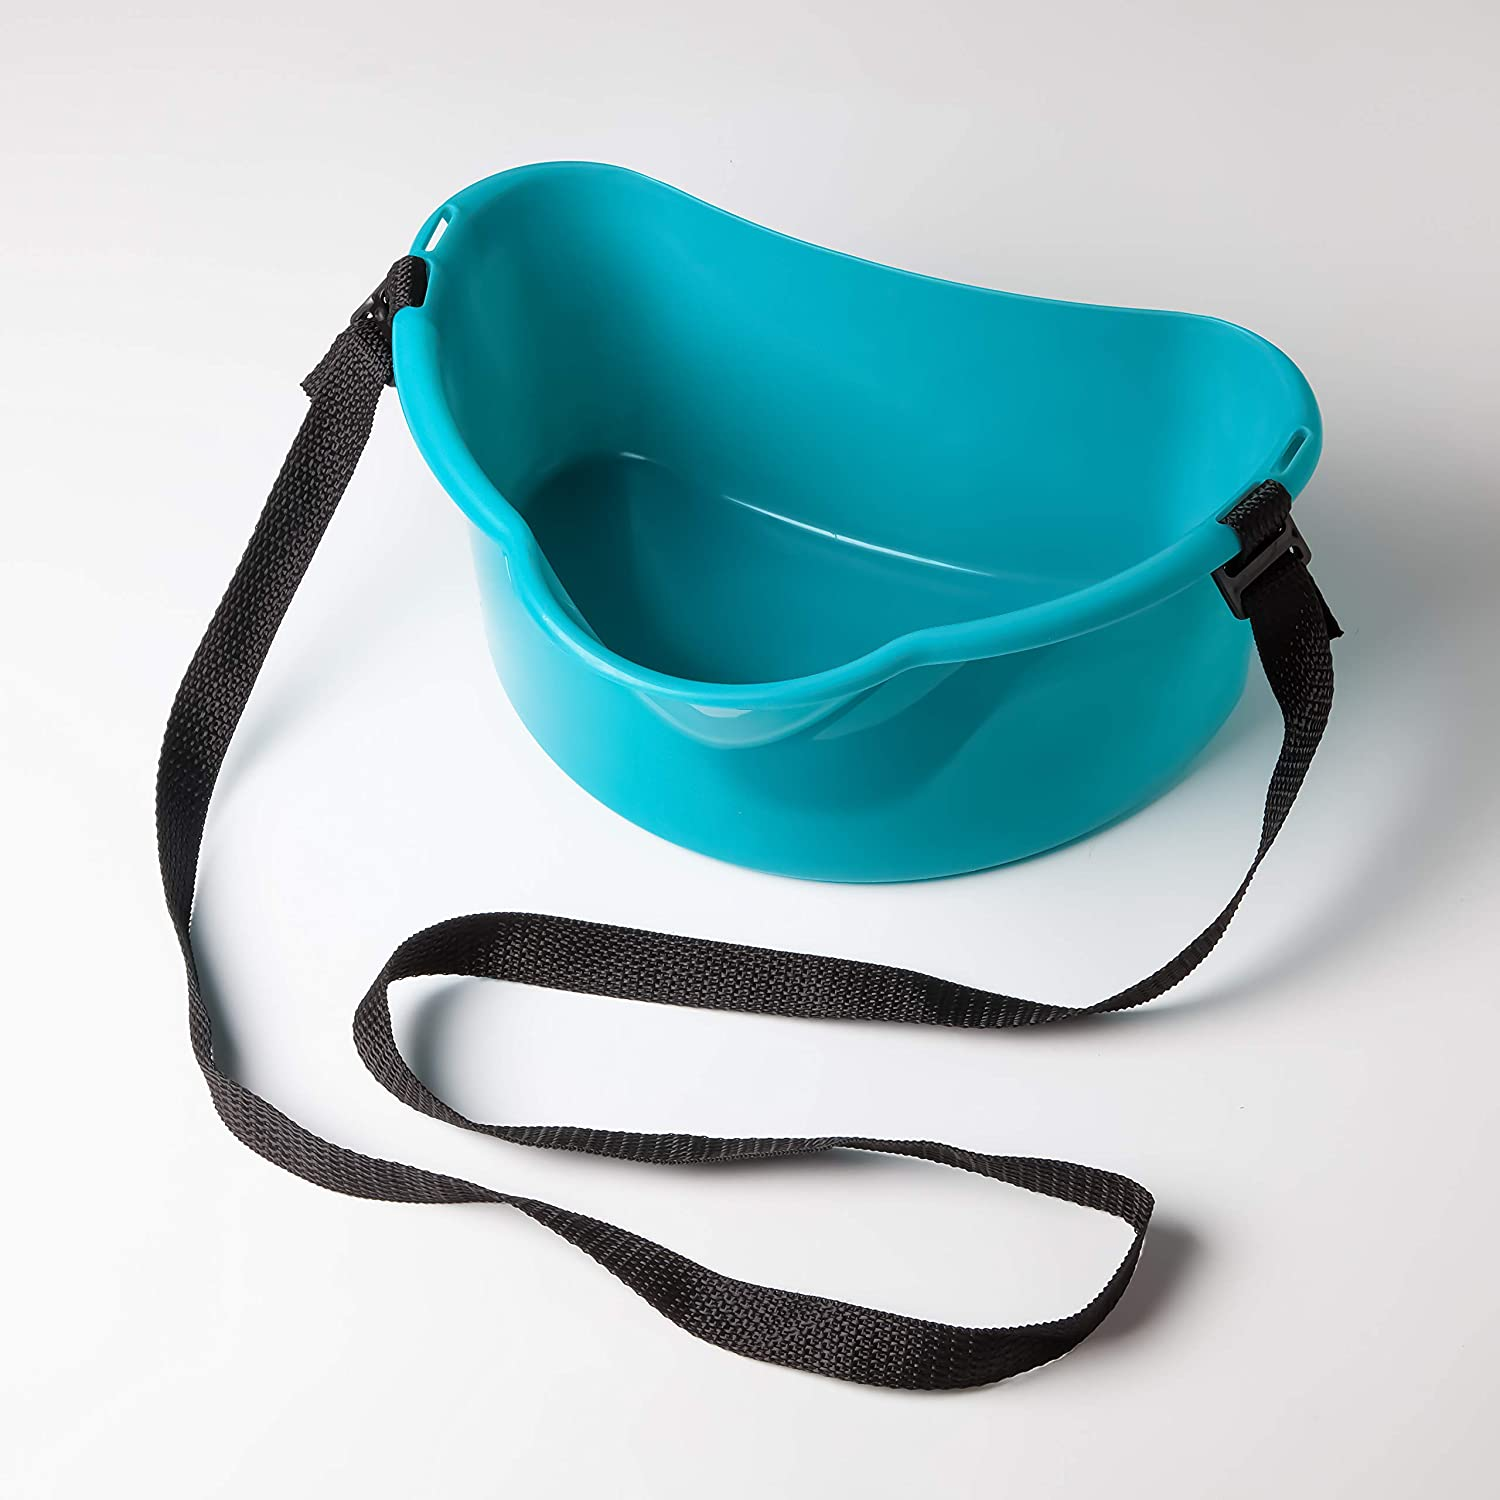 Fruits Berry Picker Harvesting Basket with Strap 3L/0.8 gal Harvest Bucket for Fruits Berries Vegetables Garden Tools Container Belt Support Farm | 1 pcs Turquoise